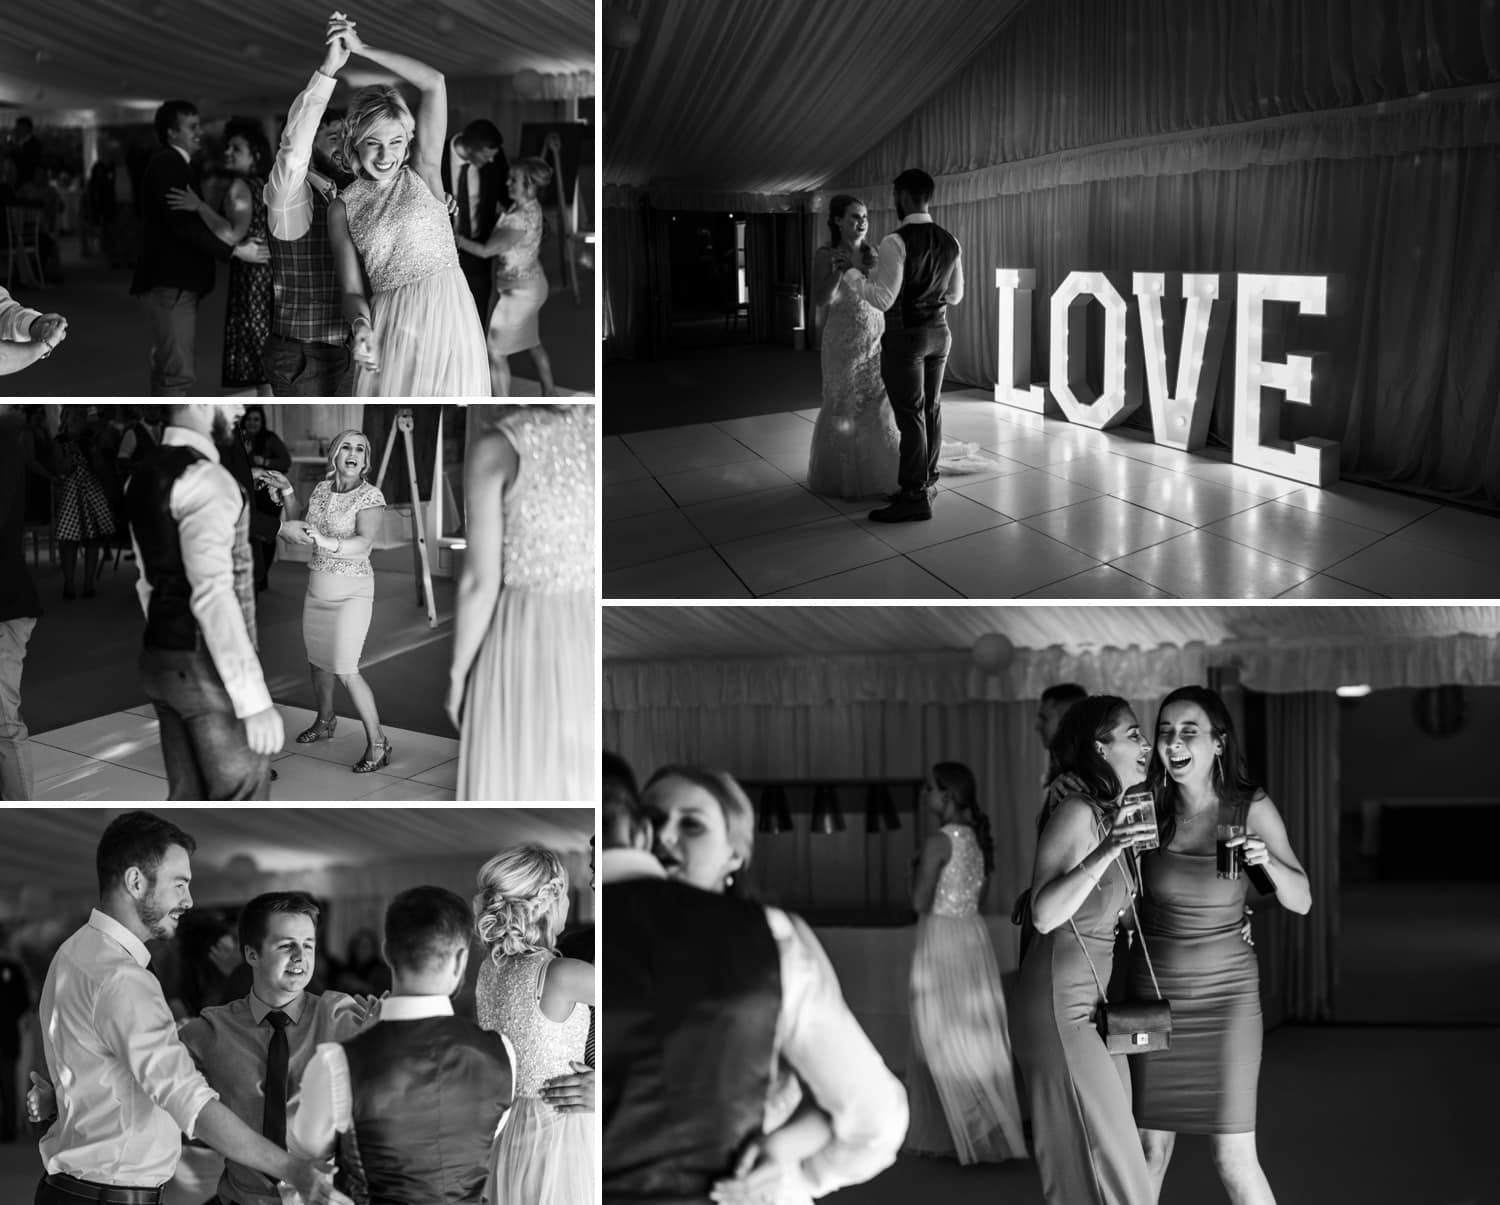 Dancing at Herefordshire wedding venue Flanesford Priory